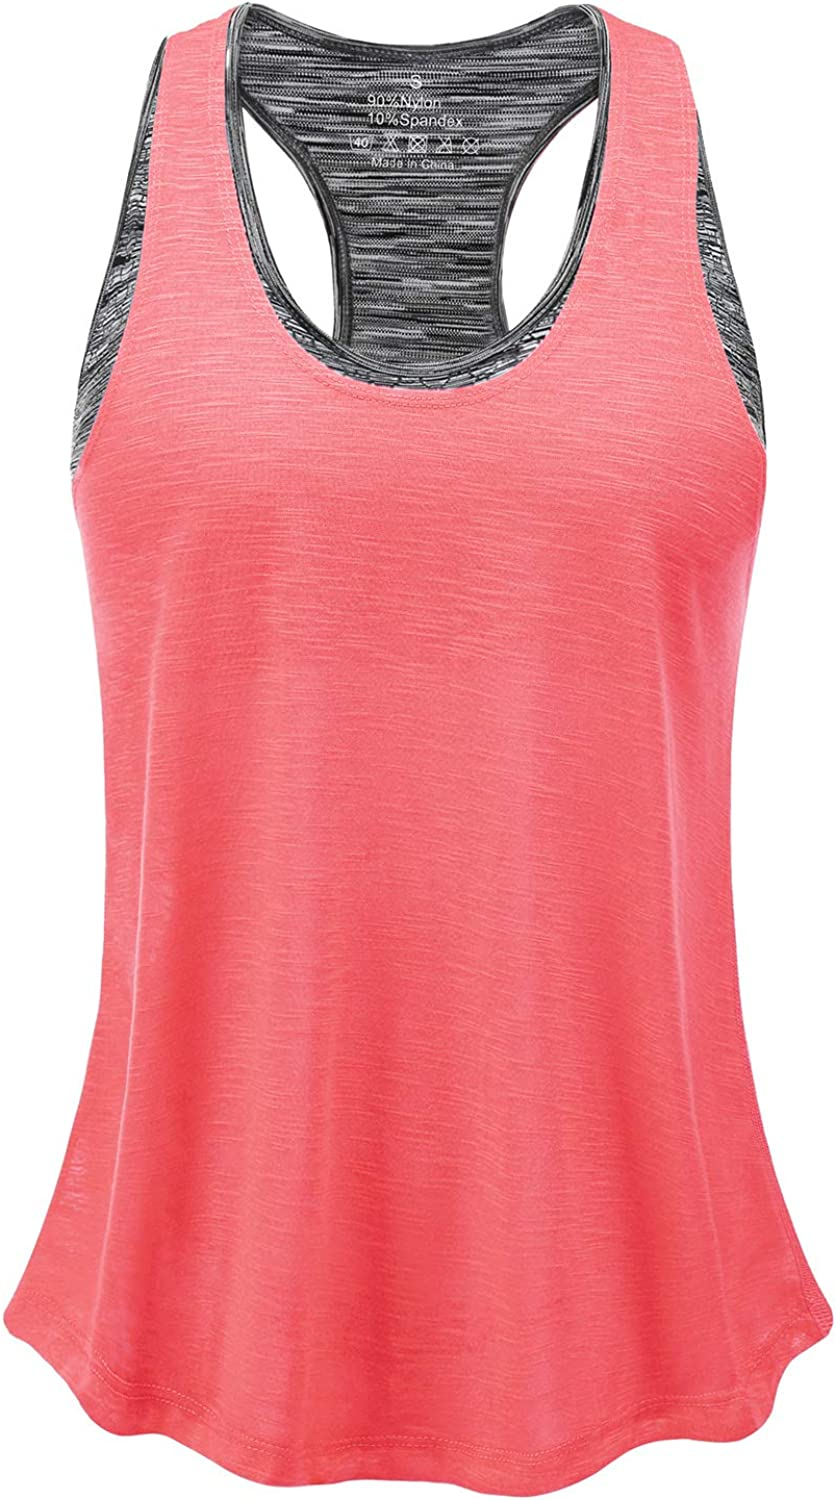 FAFAIR Workout Tank Tops for Women with Built in Bra Sports Gym Shirts Yoga Tops